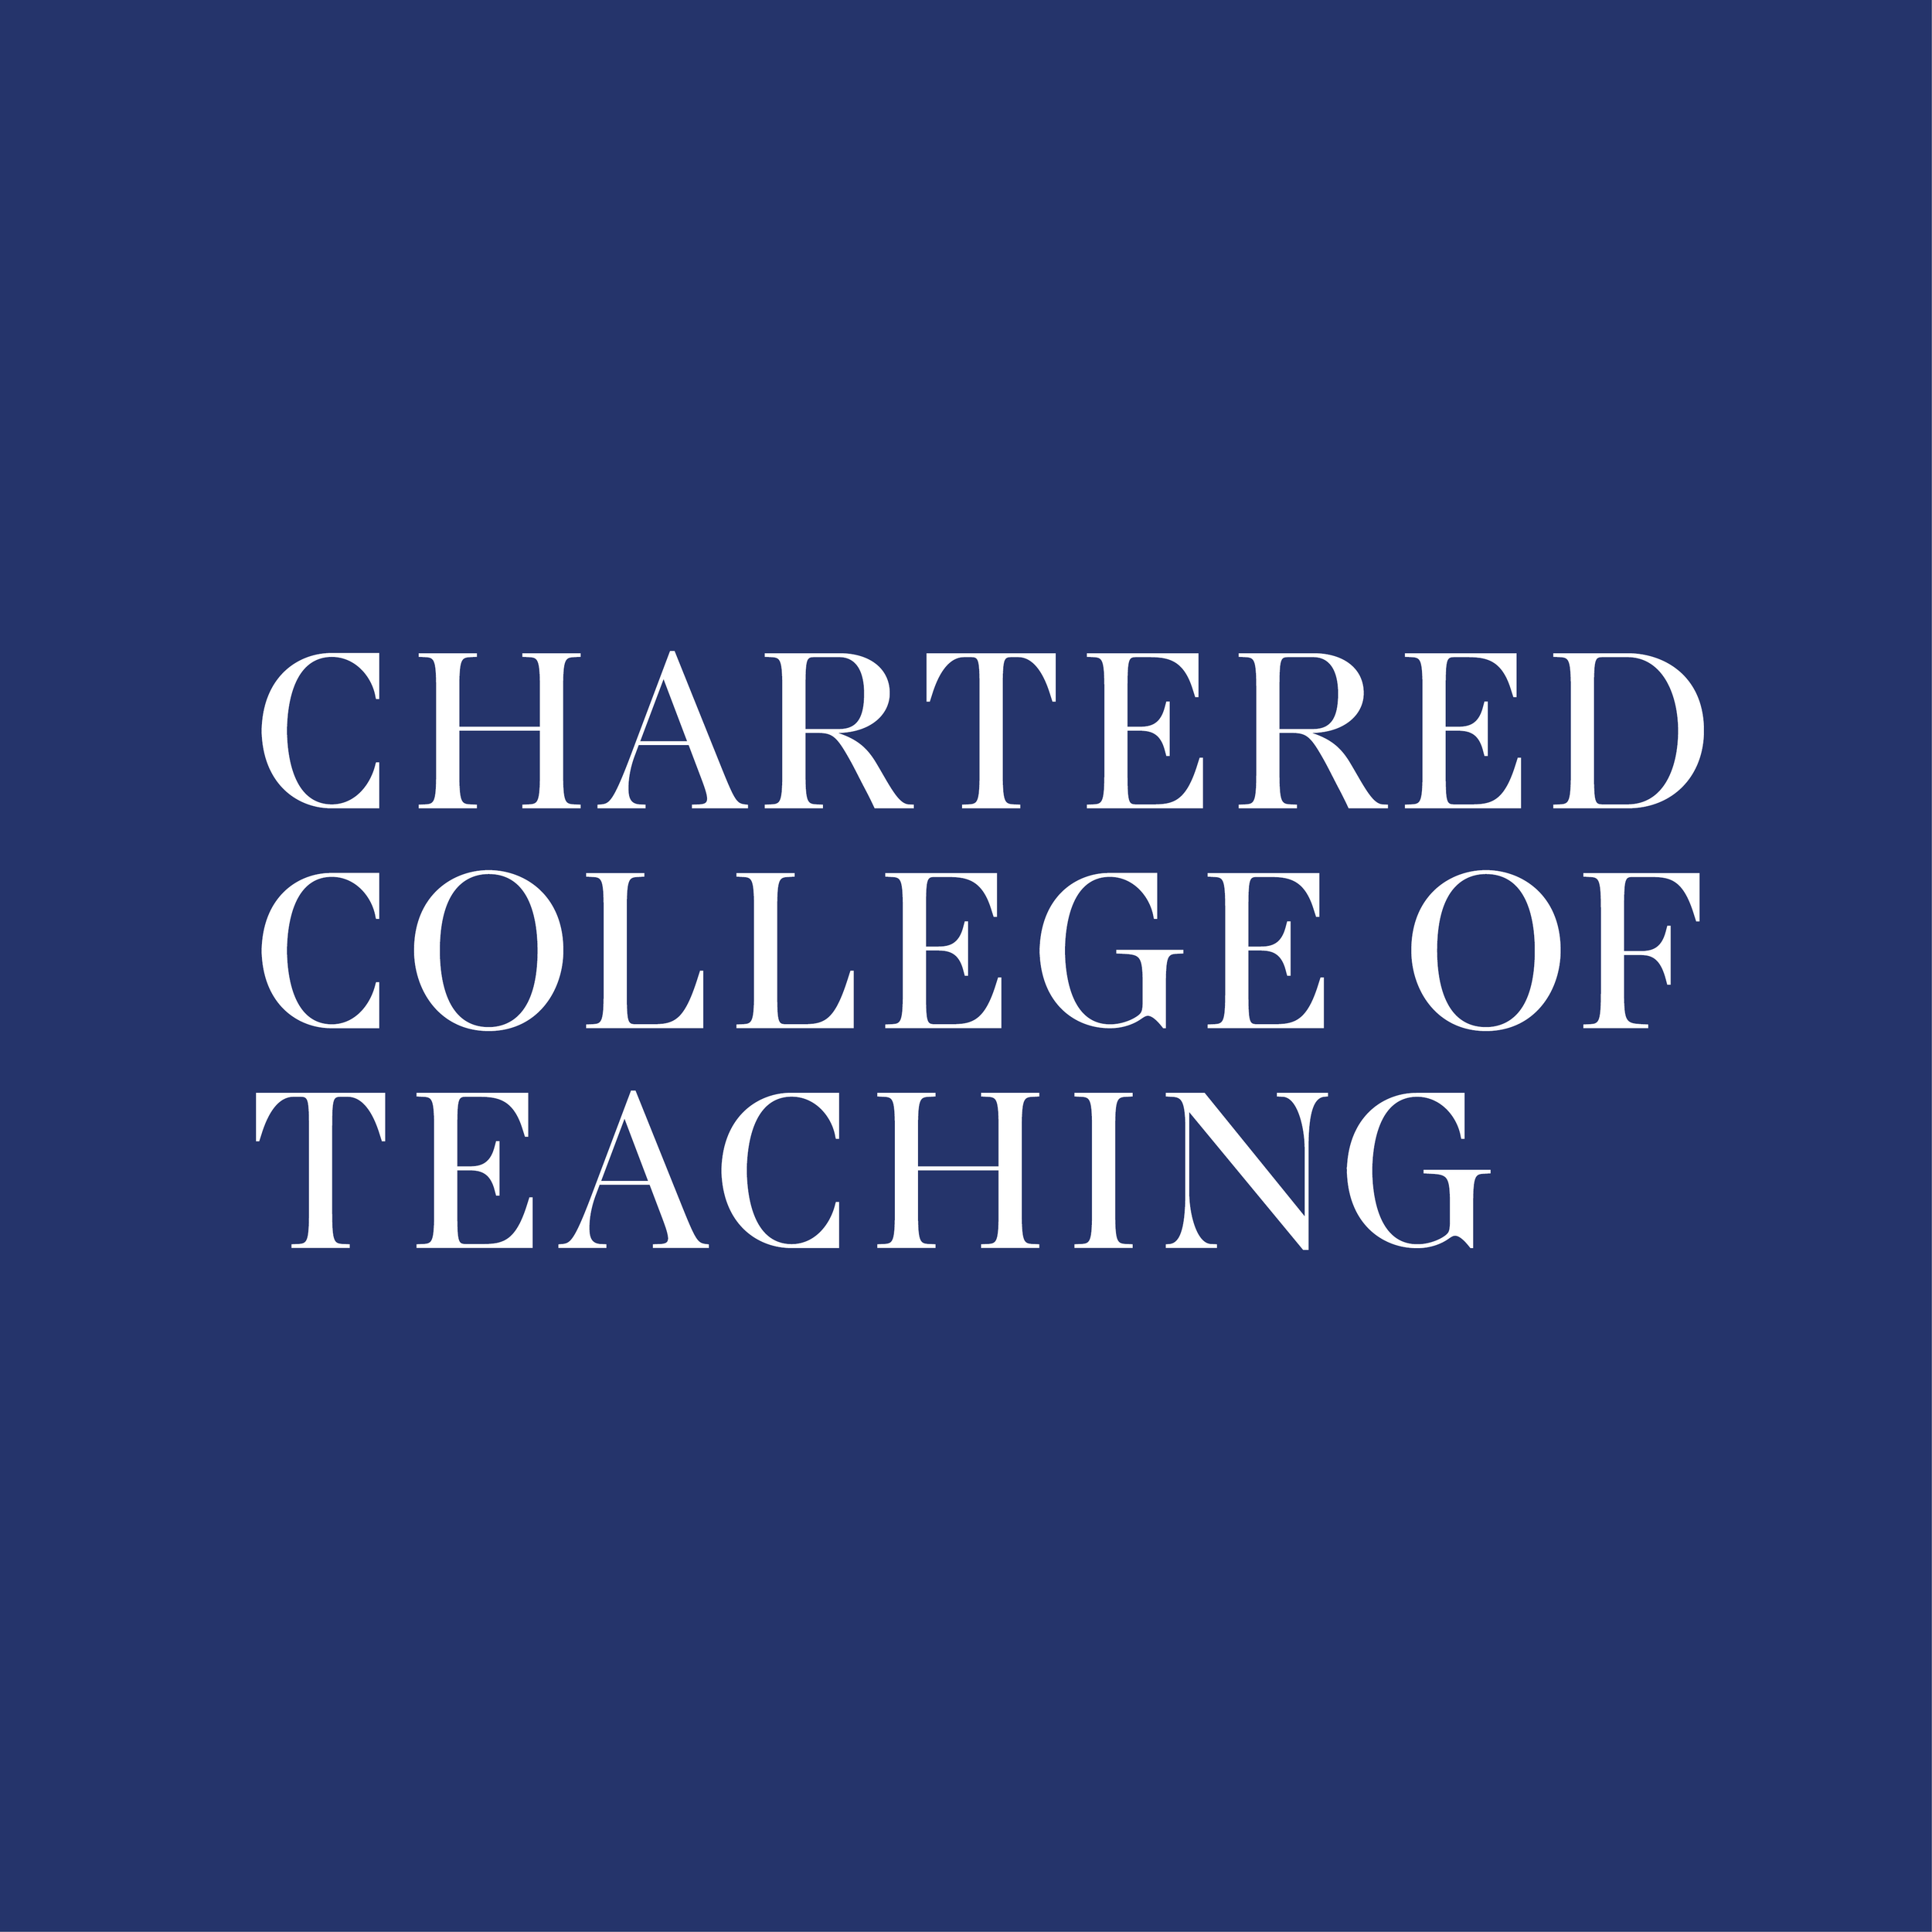 Chartered College of Teaching.png